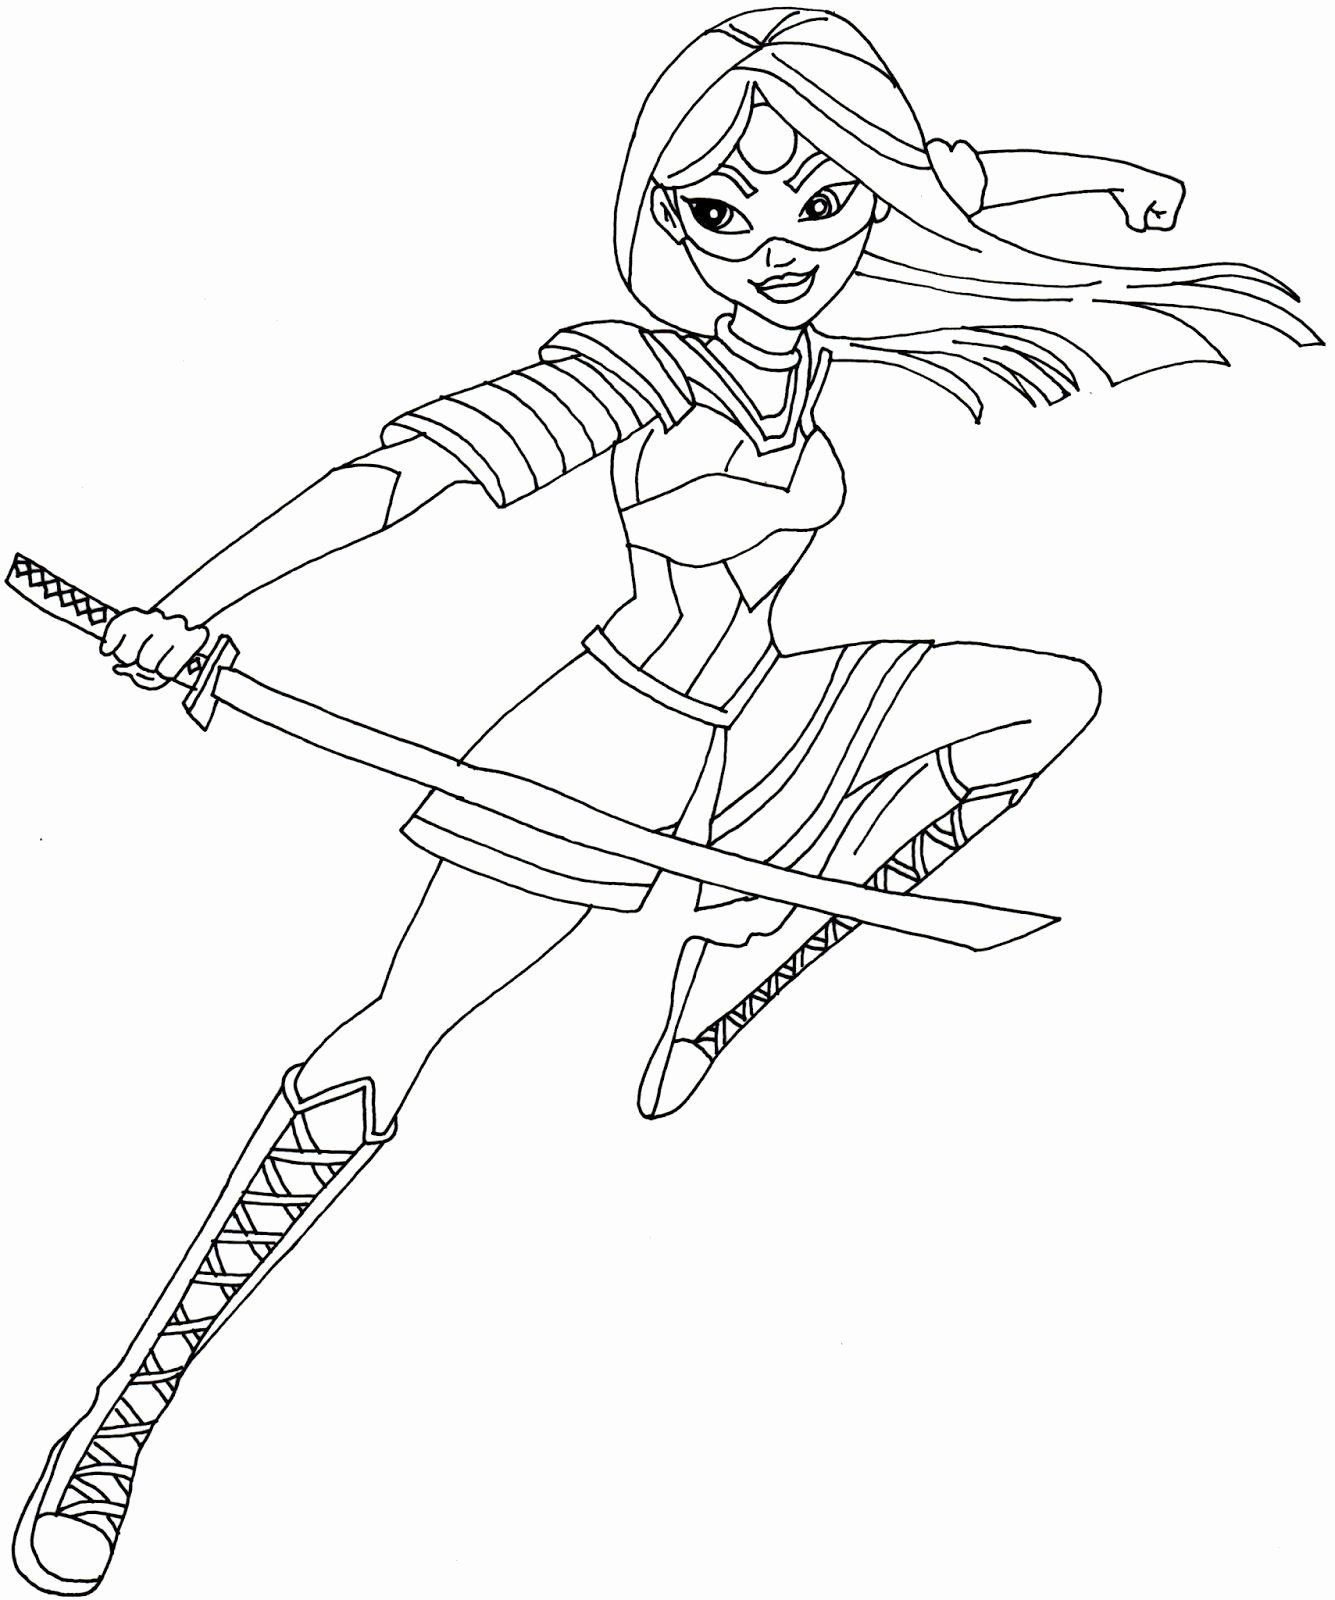 Super Hero Coloring Page Best Of Free Printable Super Hero High Coloring Page for Katana E Of My Favorite Actually I Love All